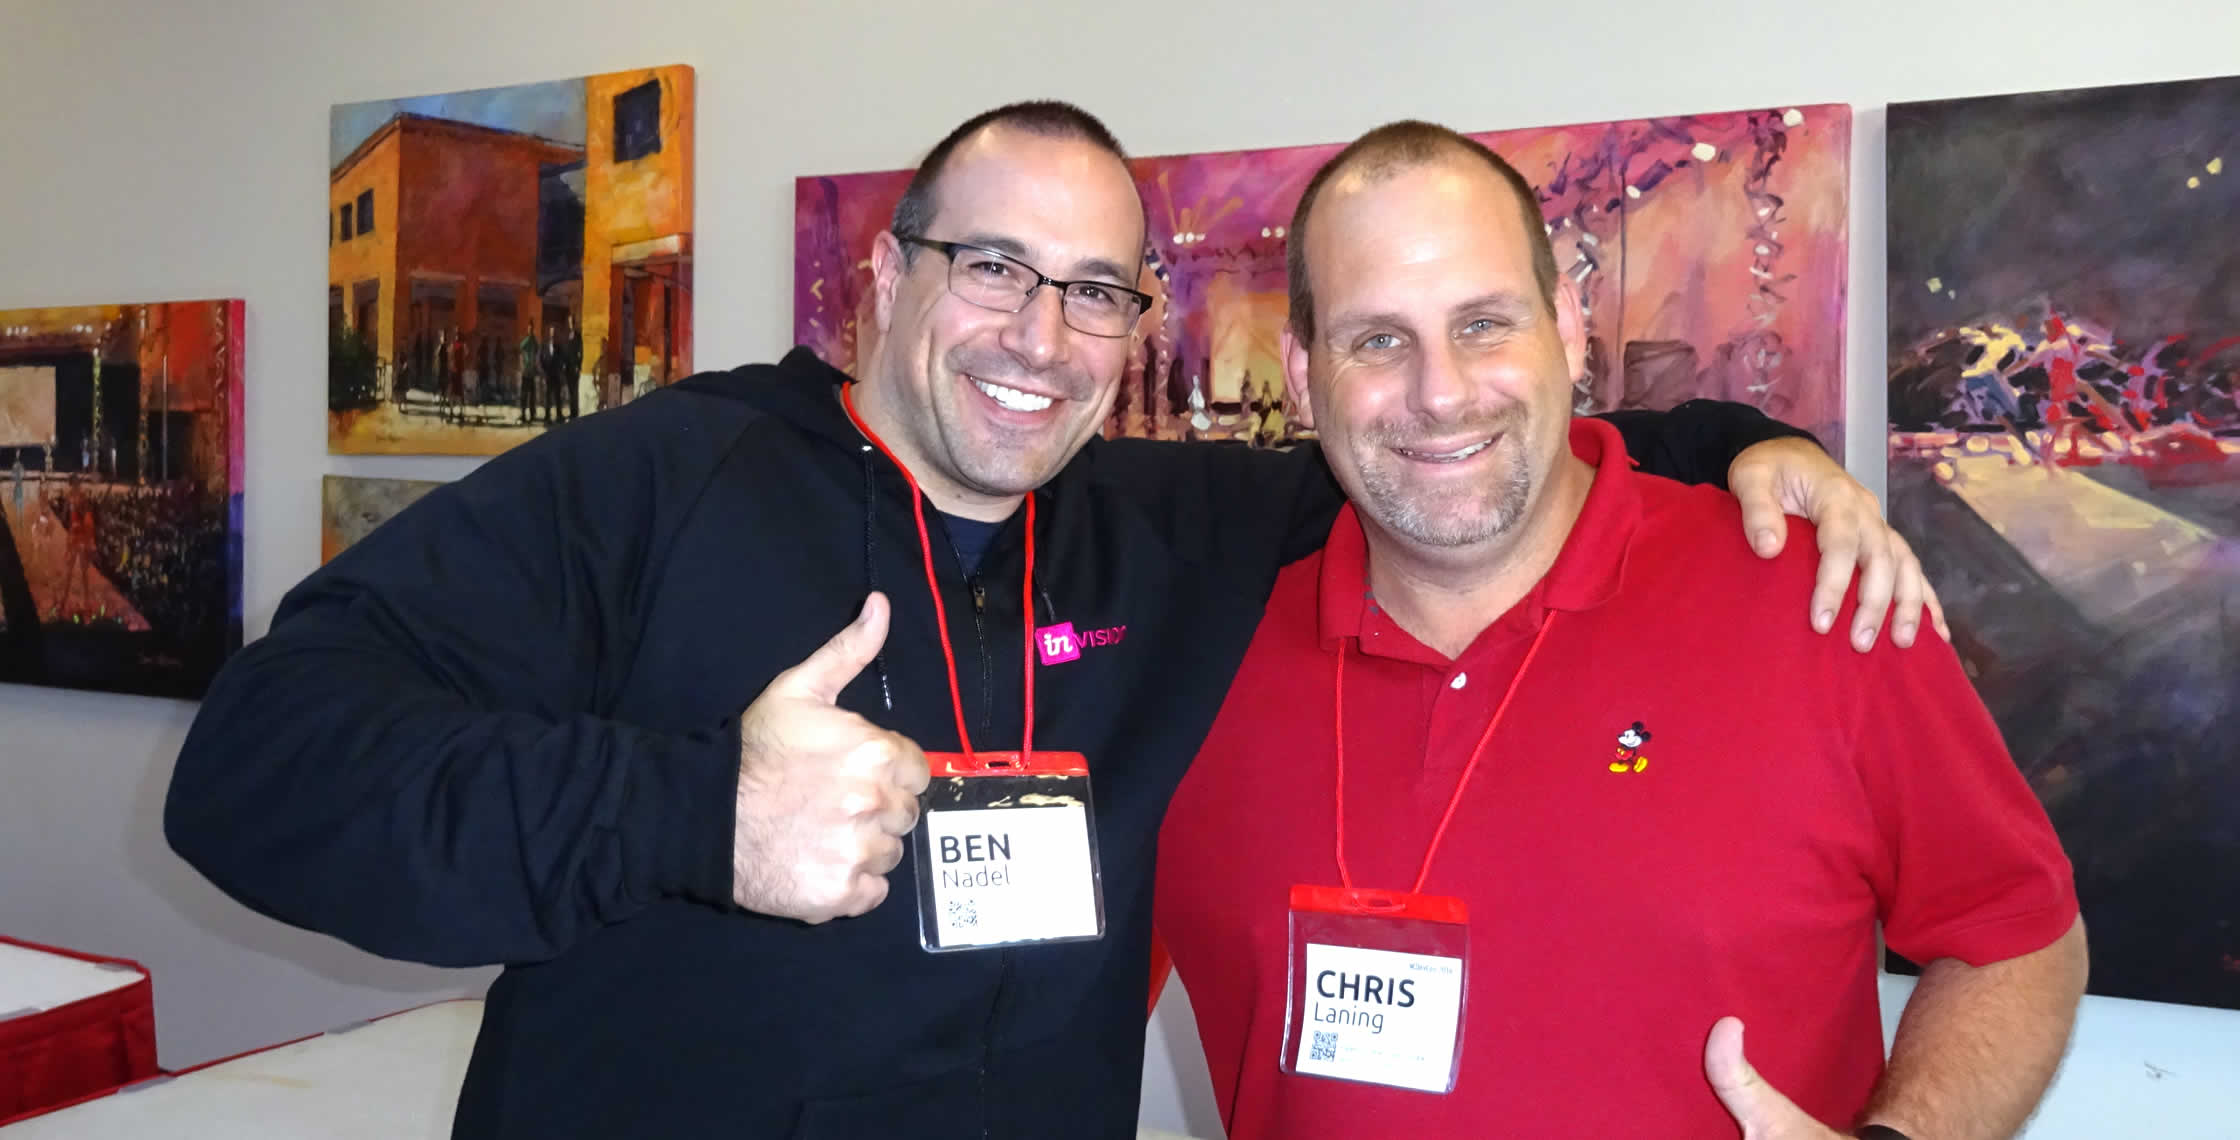 Ben Nadel at NCDevCon 2016 (Raleigh, NC) with: Chris Laning